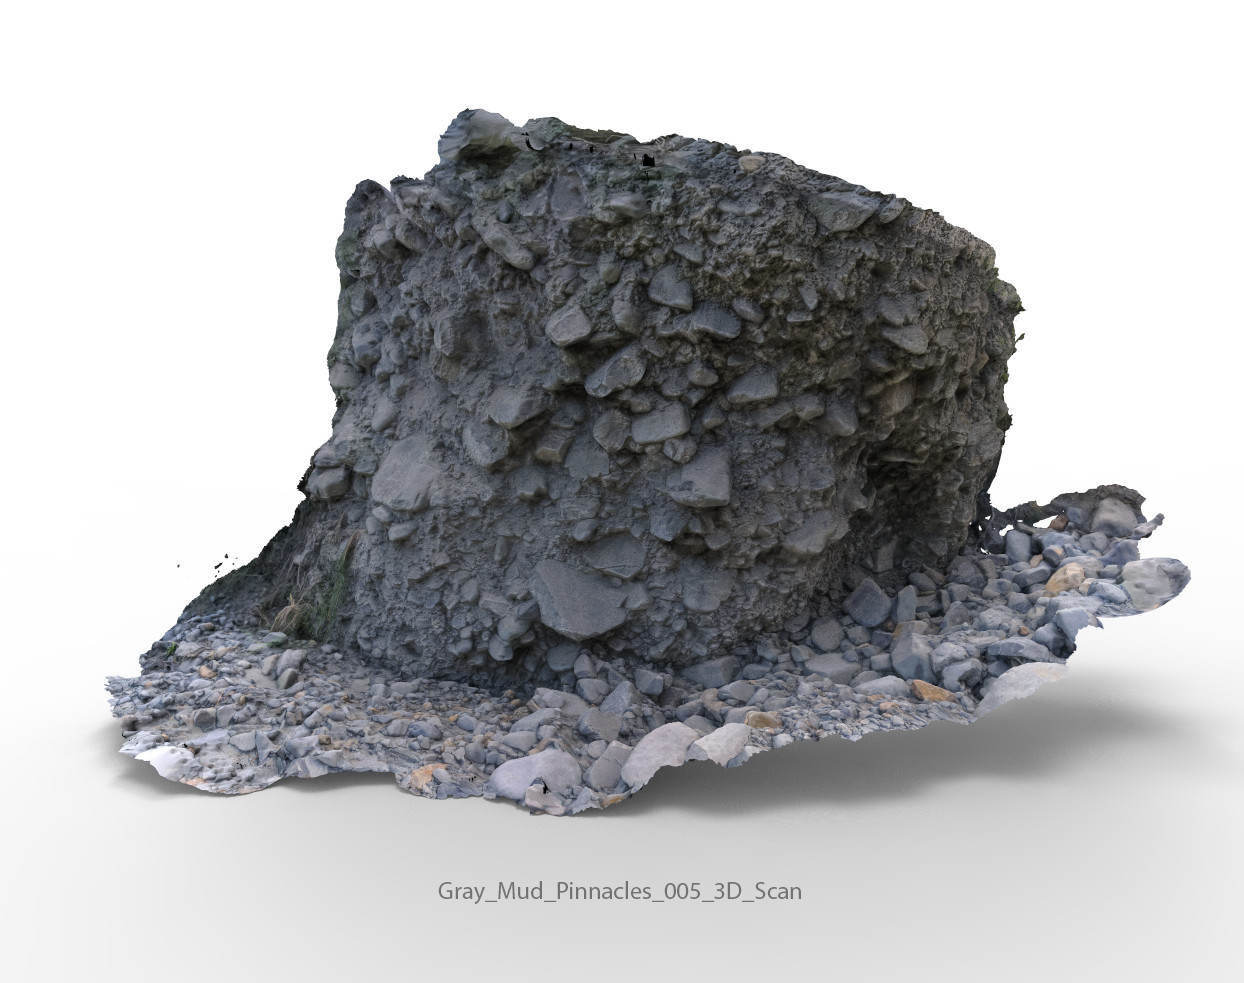 Anton tenitsky gray mud pinnacles 005 3d scan